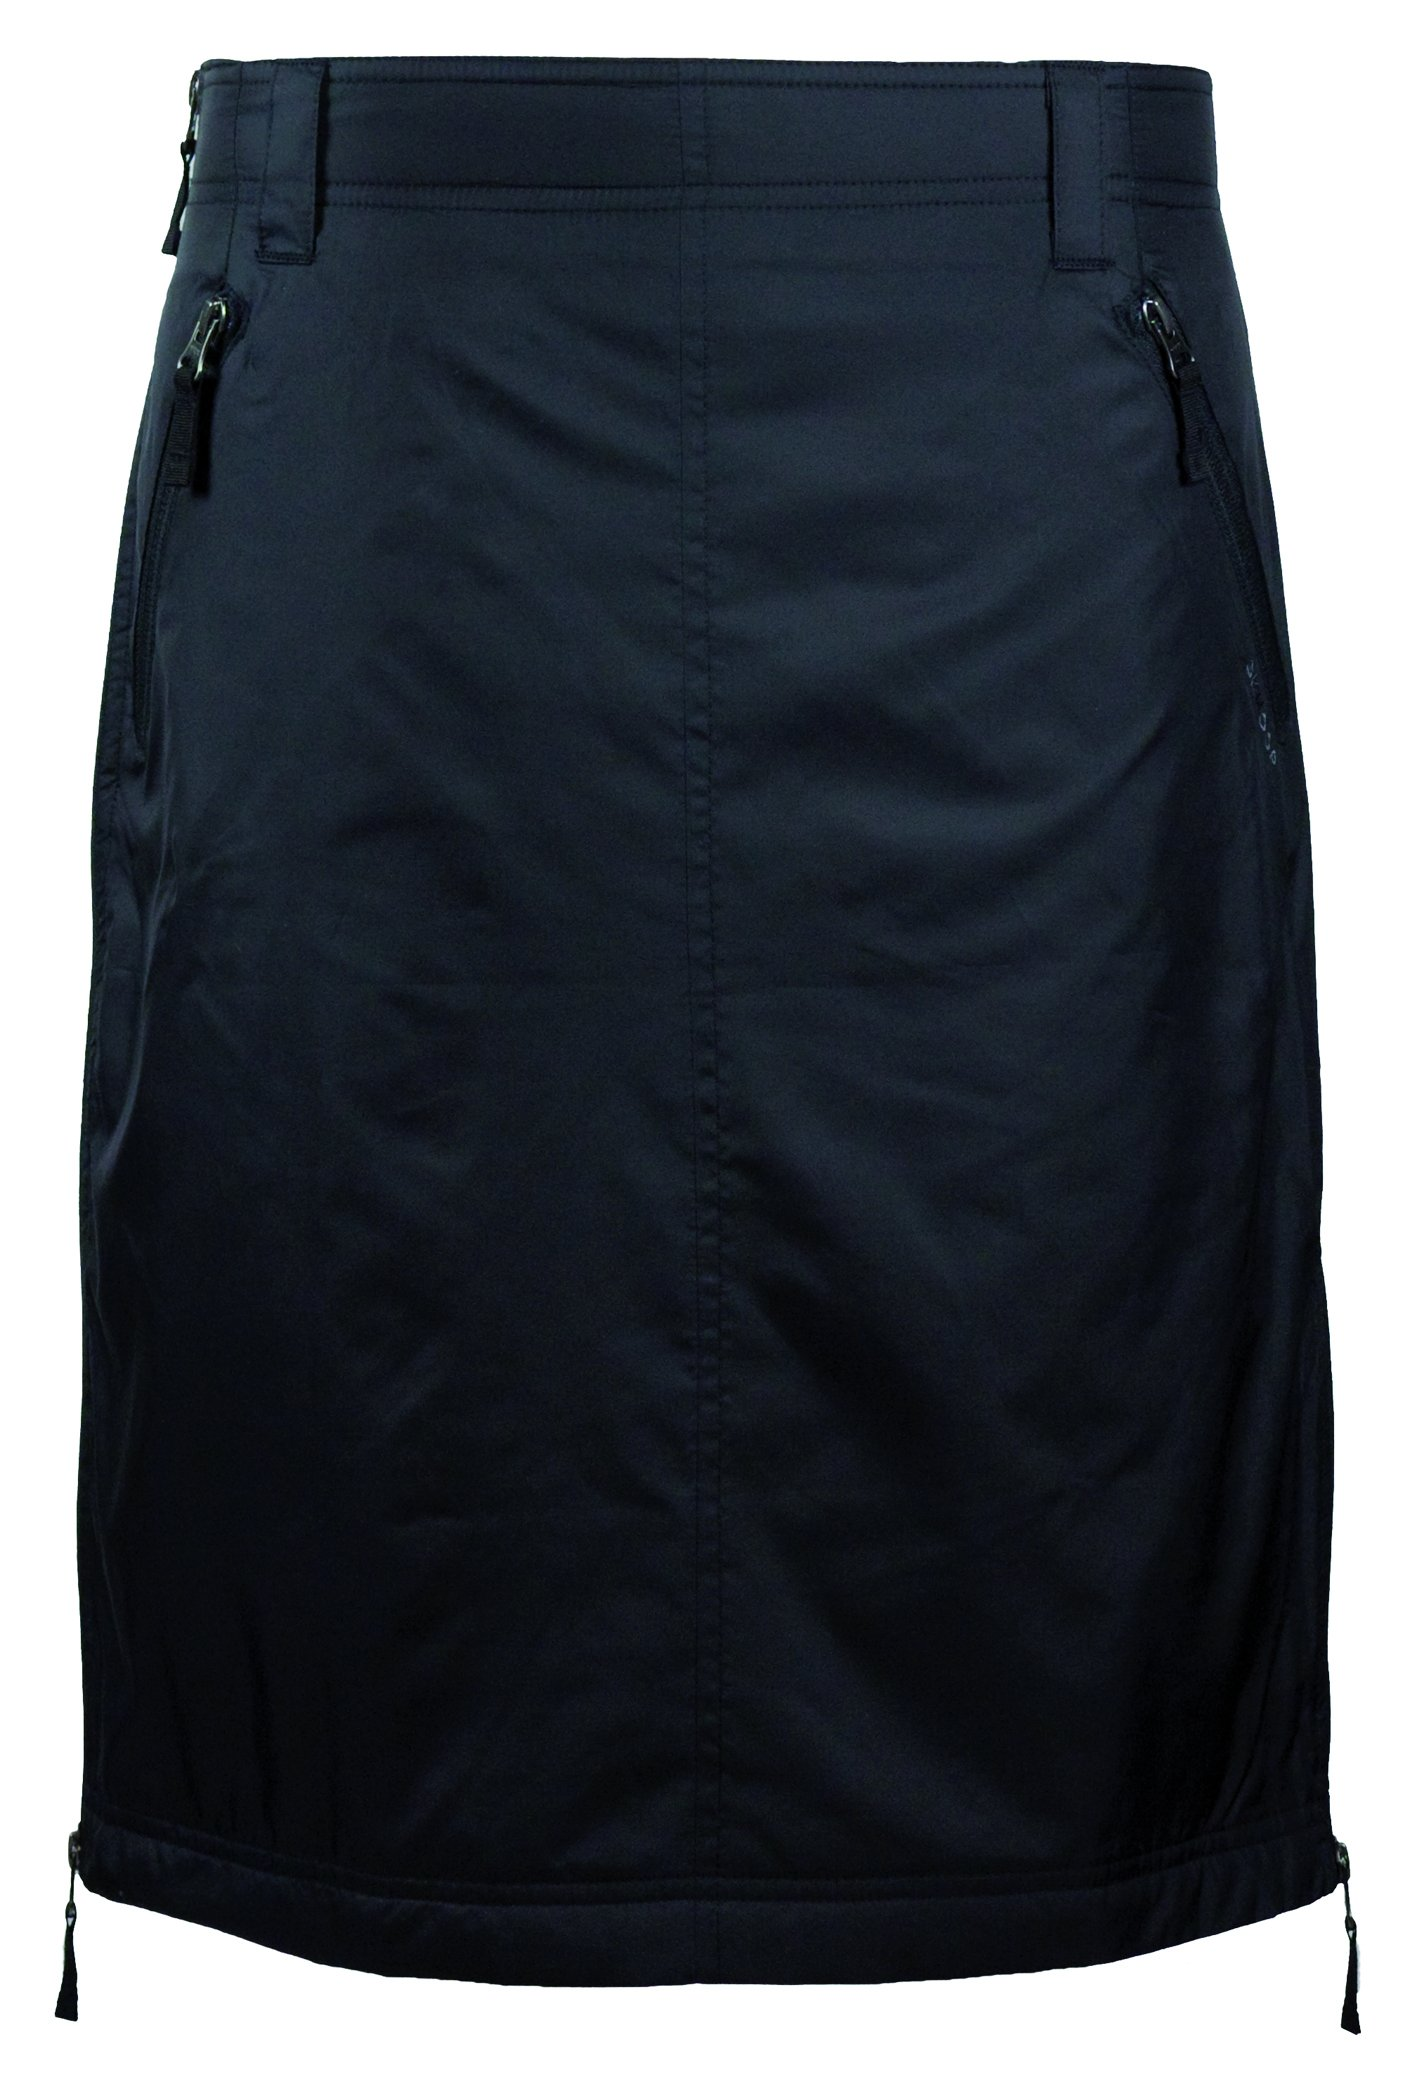 Skhoop Hera Knee Skirt, Black, Large